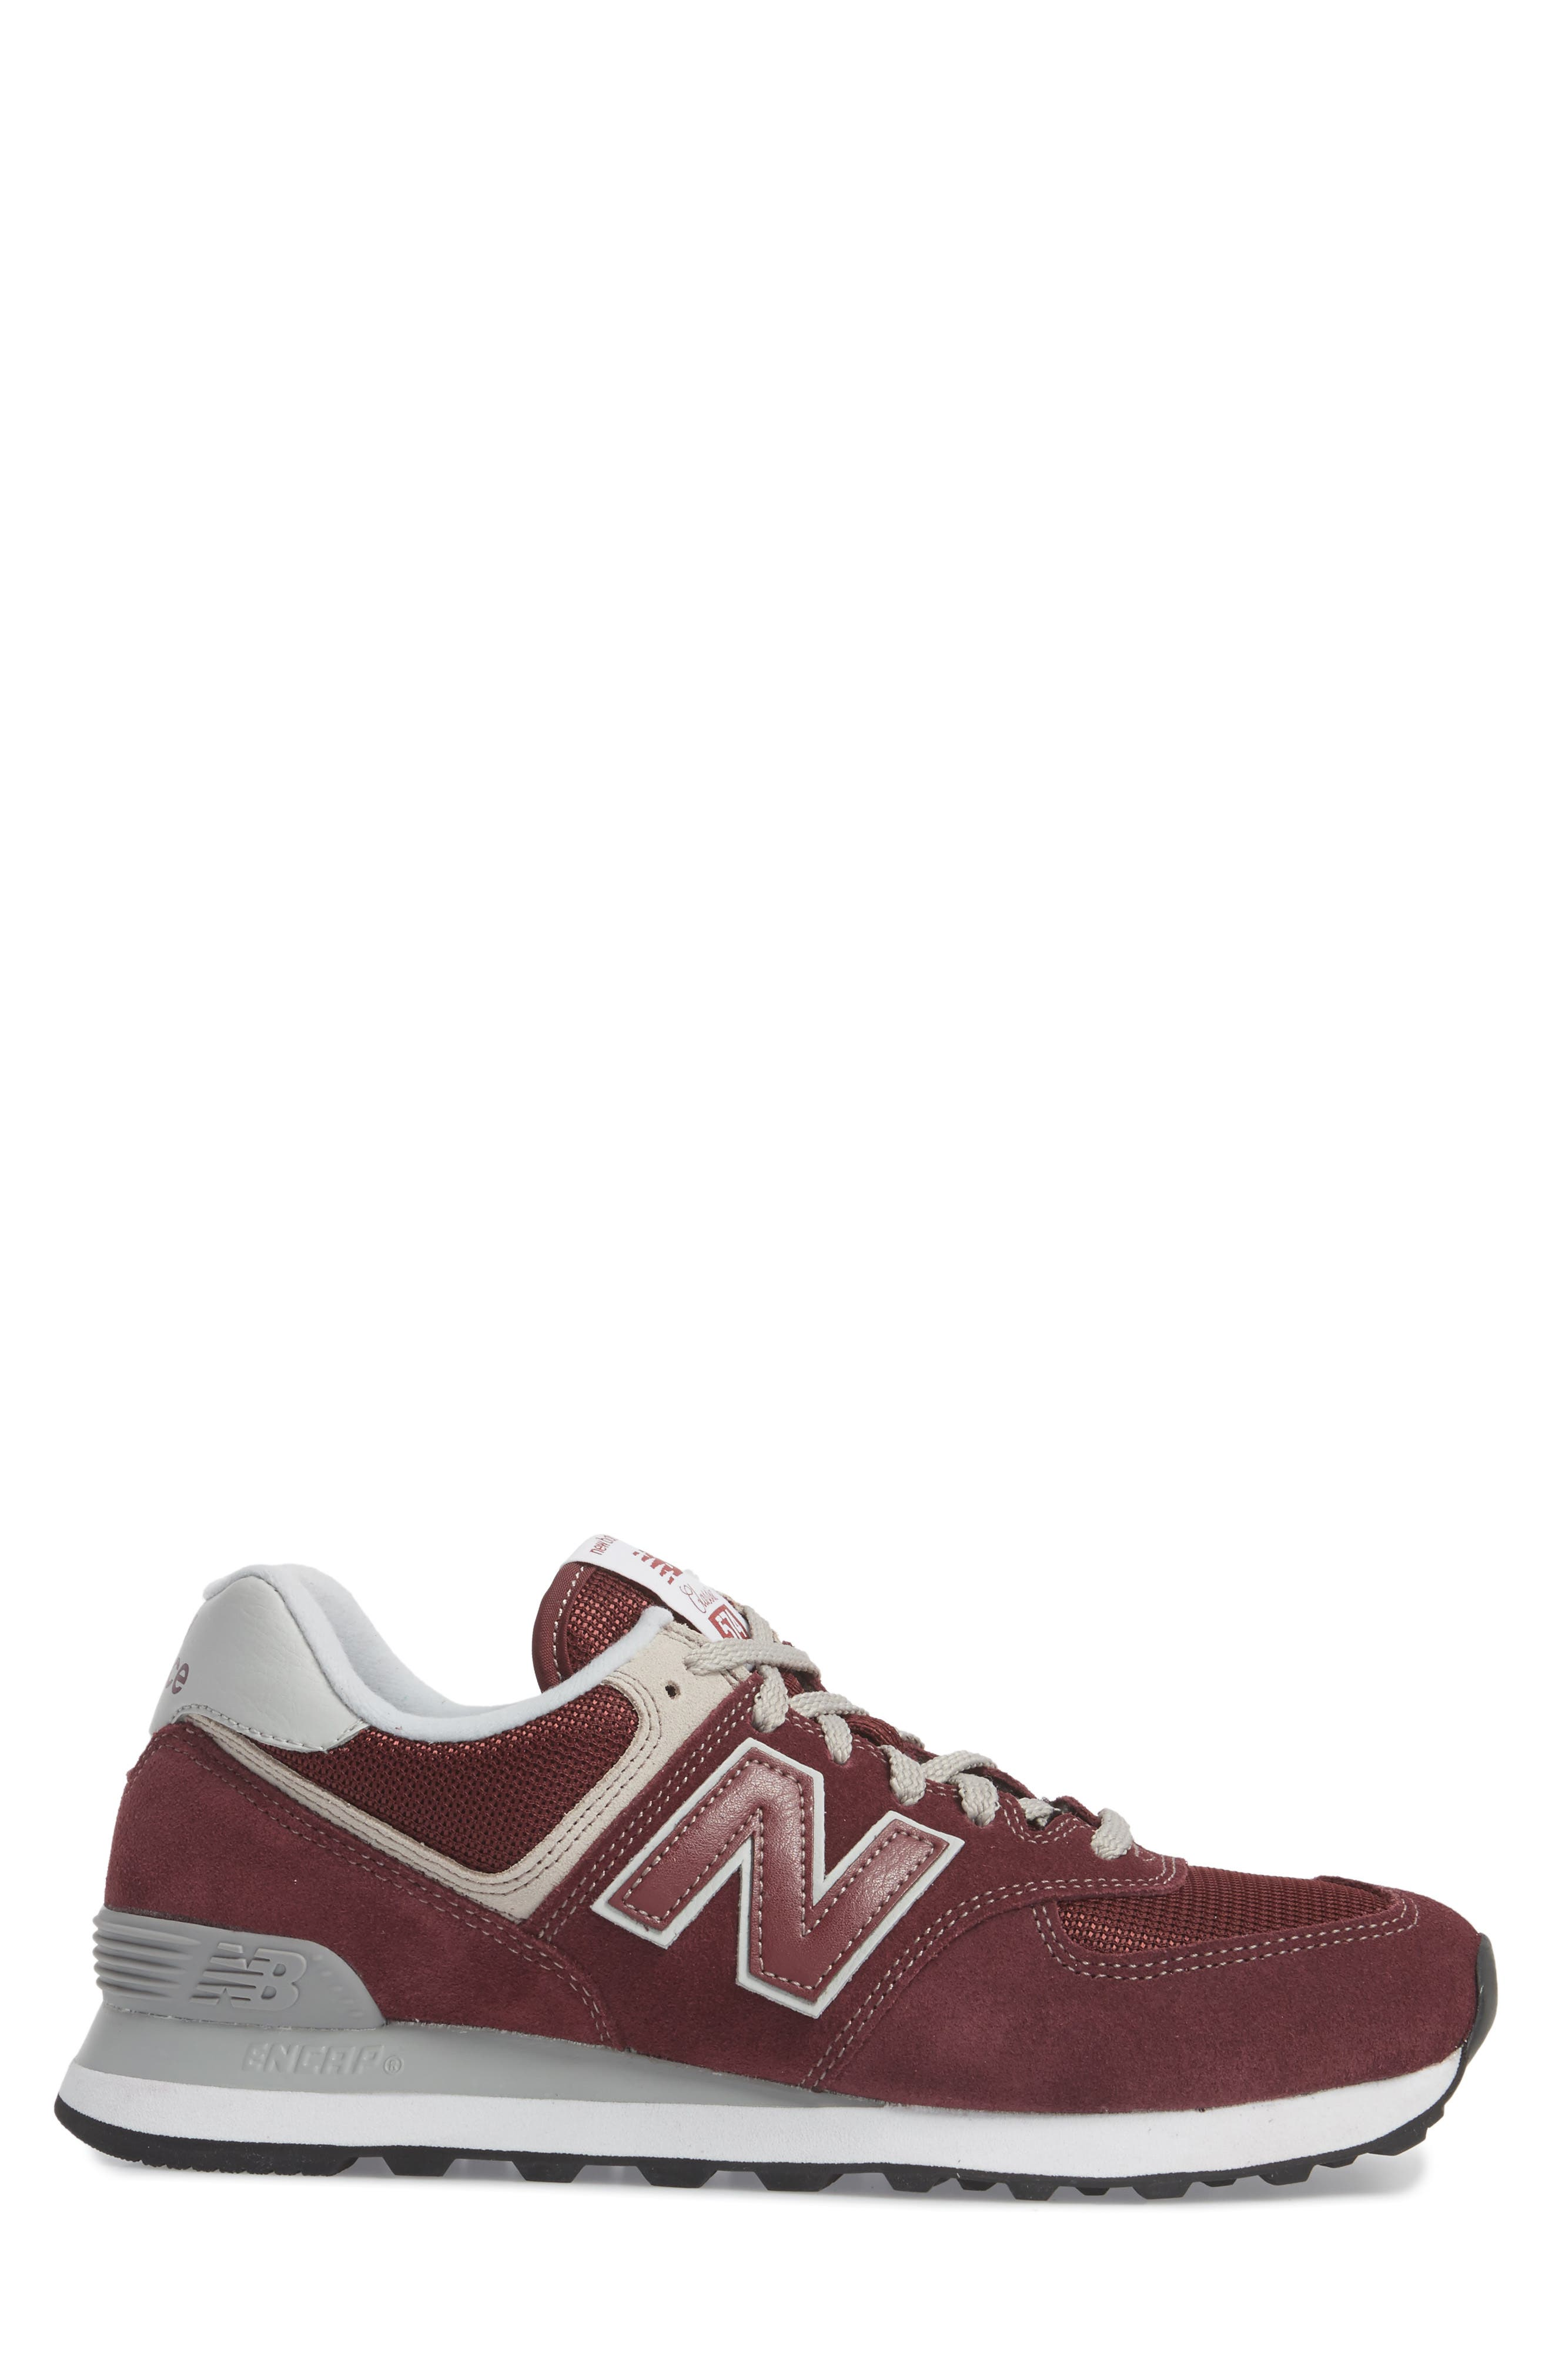 NEW BALANCE, 574 Classic Sneaker, Alternate thumbnail 3, color, BURGUNDY